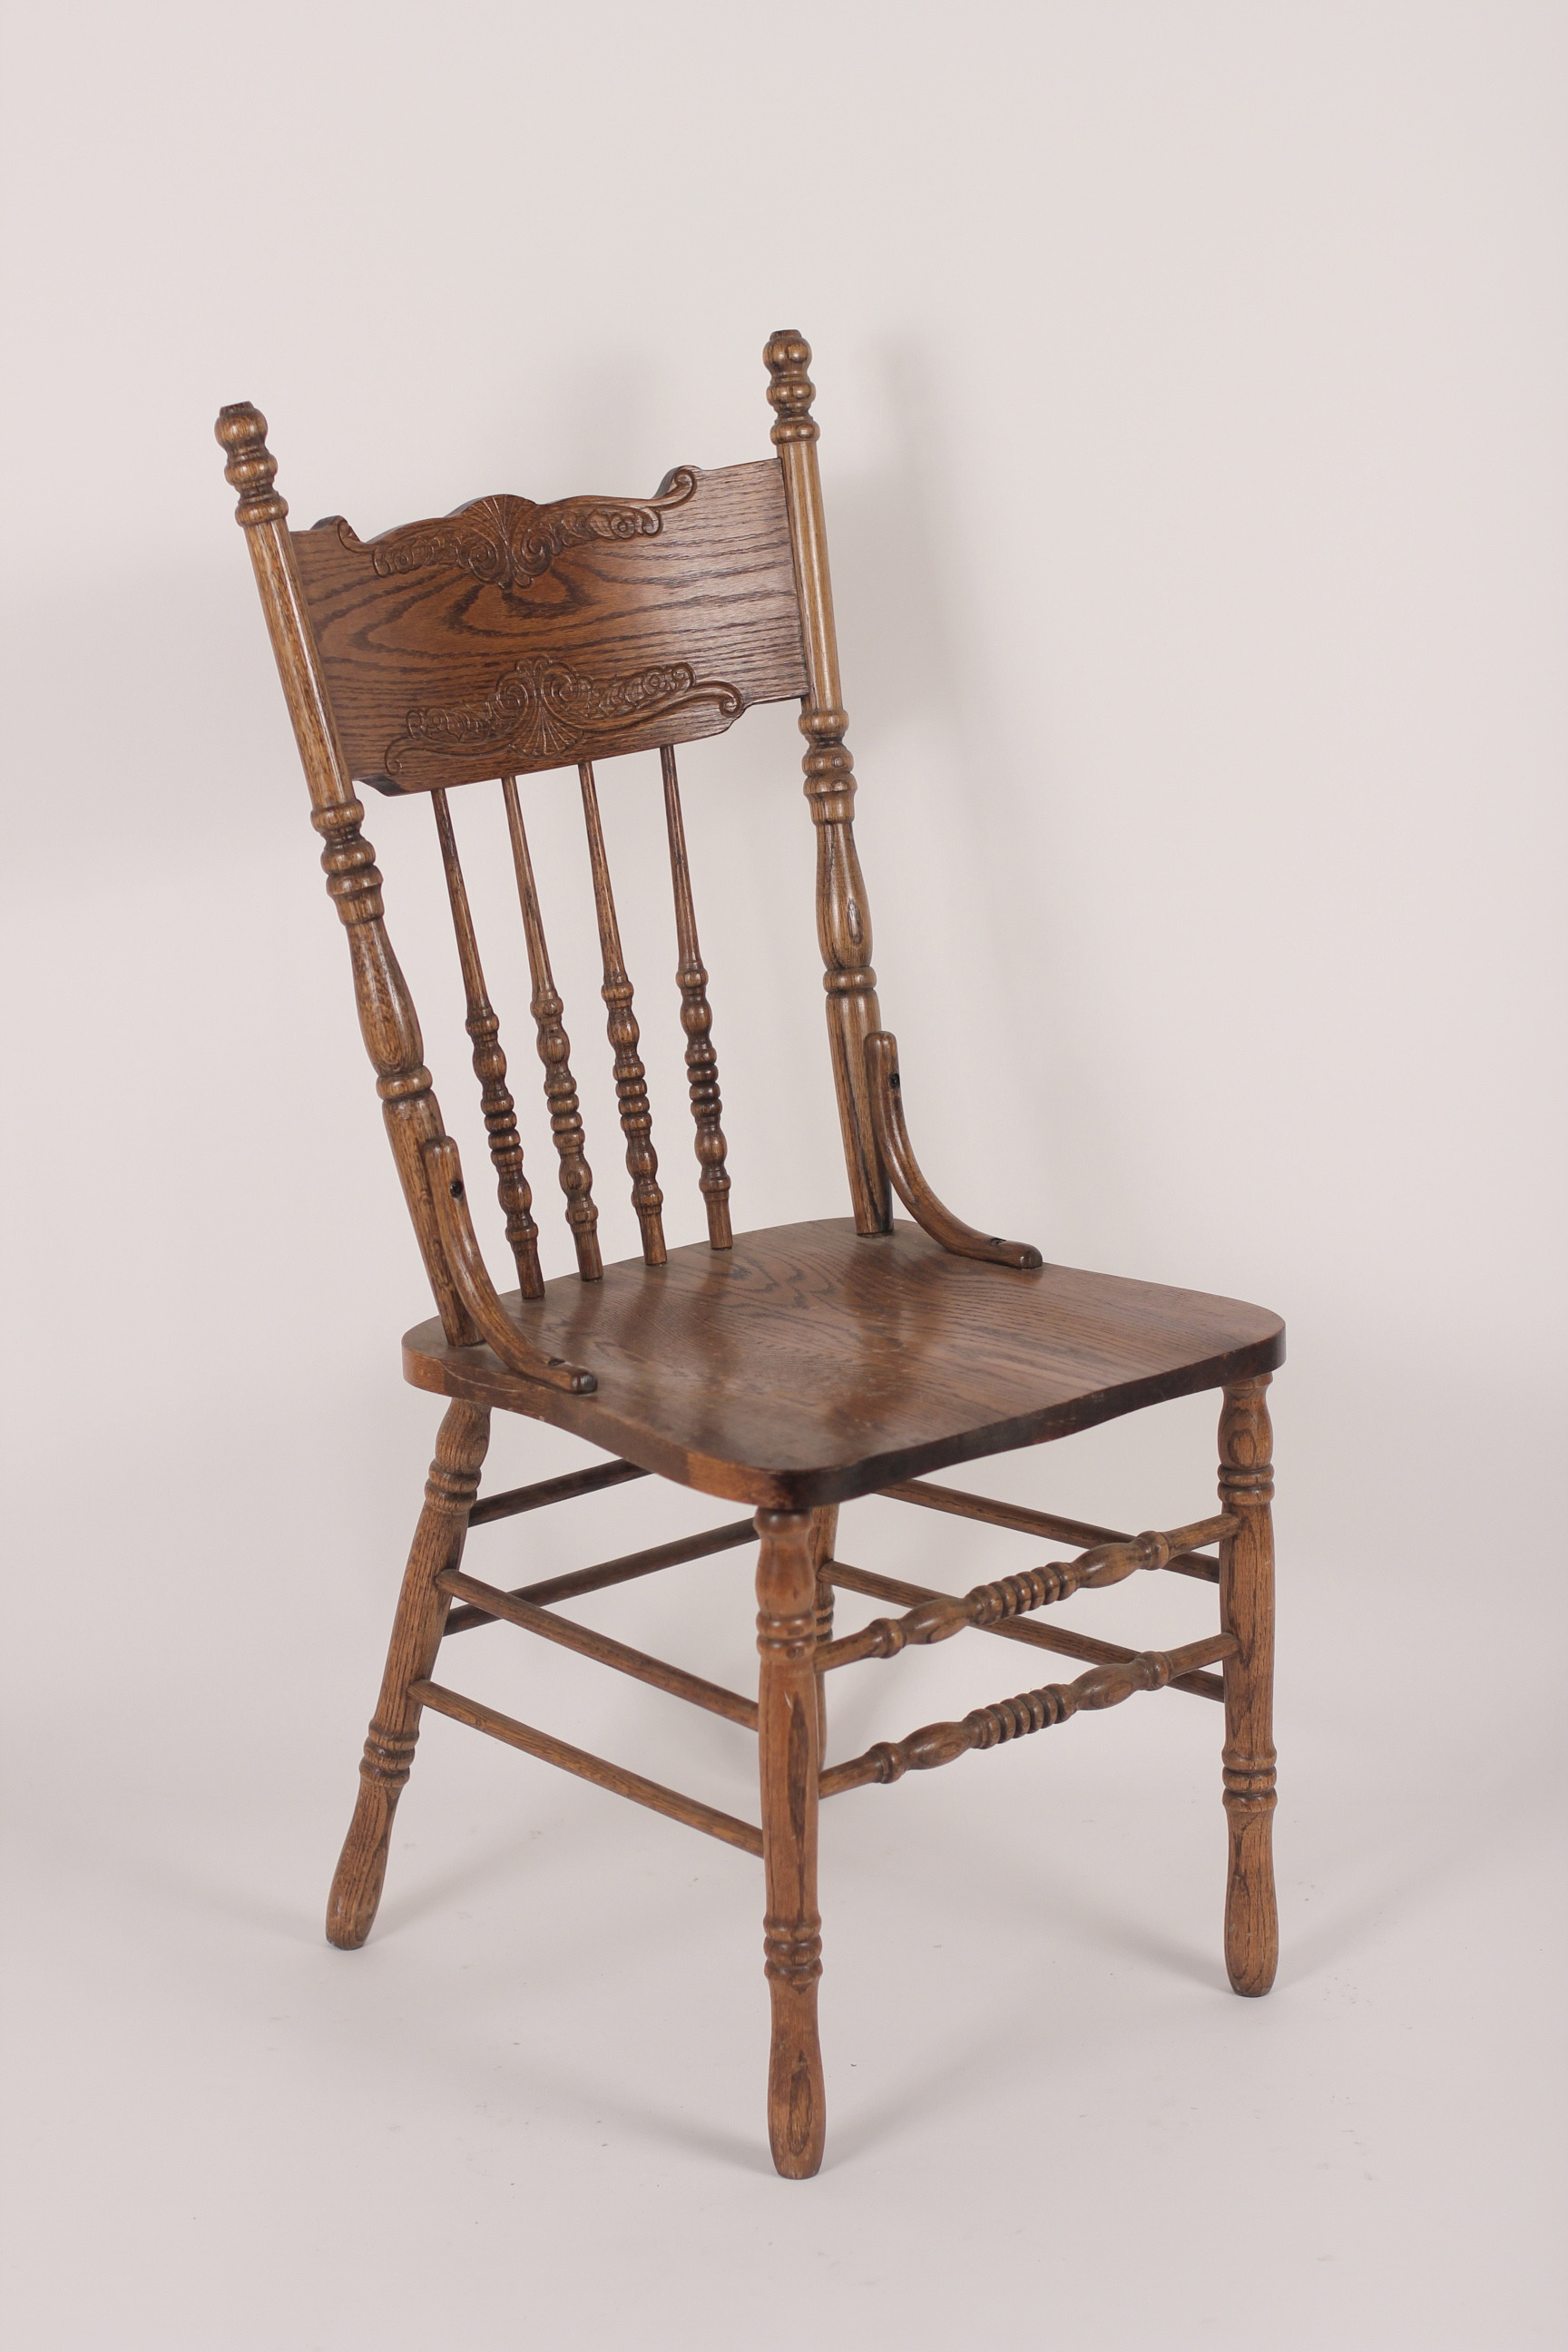 wood chair parts suppliers spindle chair spindle armchair turned wood spindles spindle back dining room chairs zgallerie chairs rocking chair replacement parts wood chair seat replacement sp